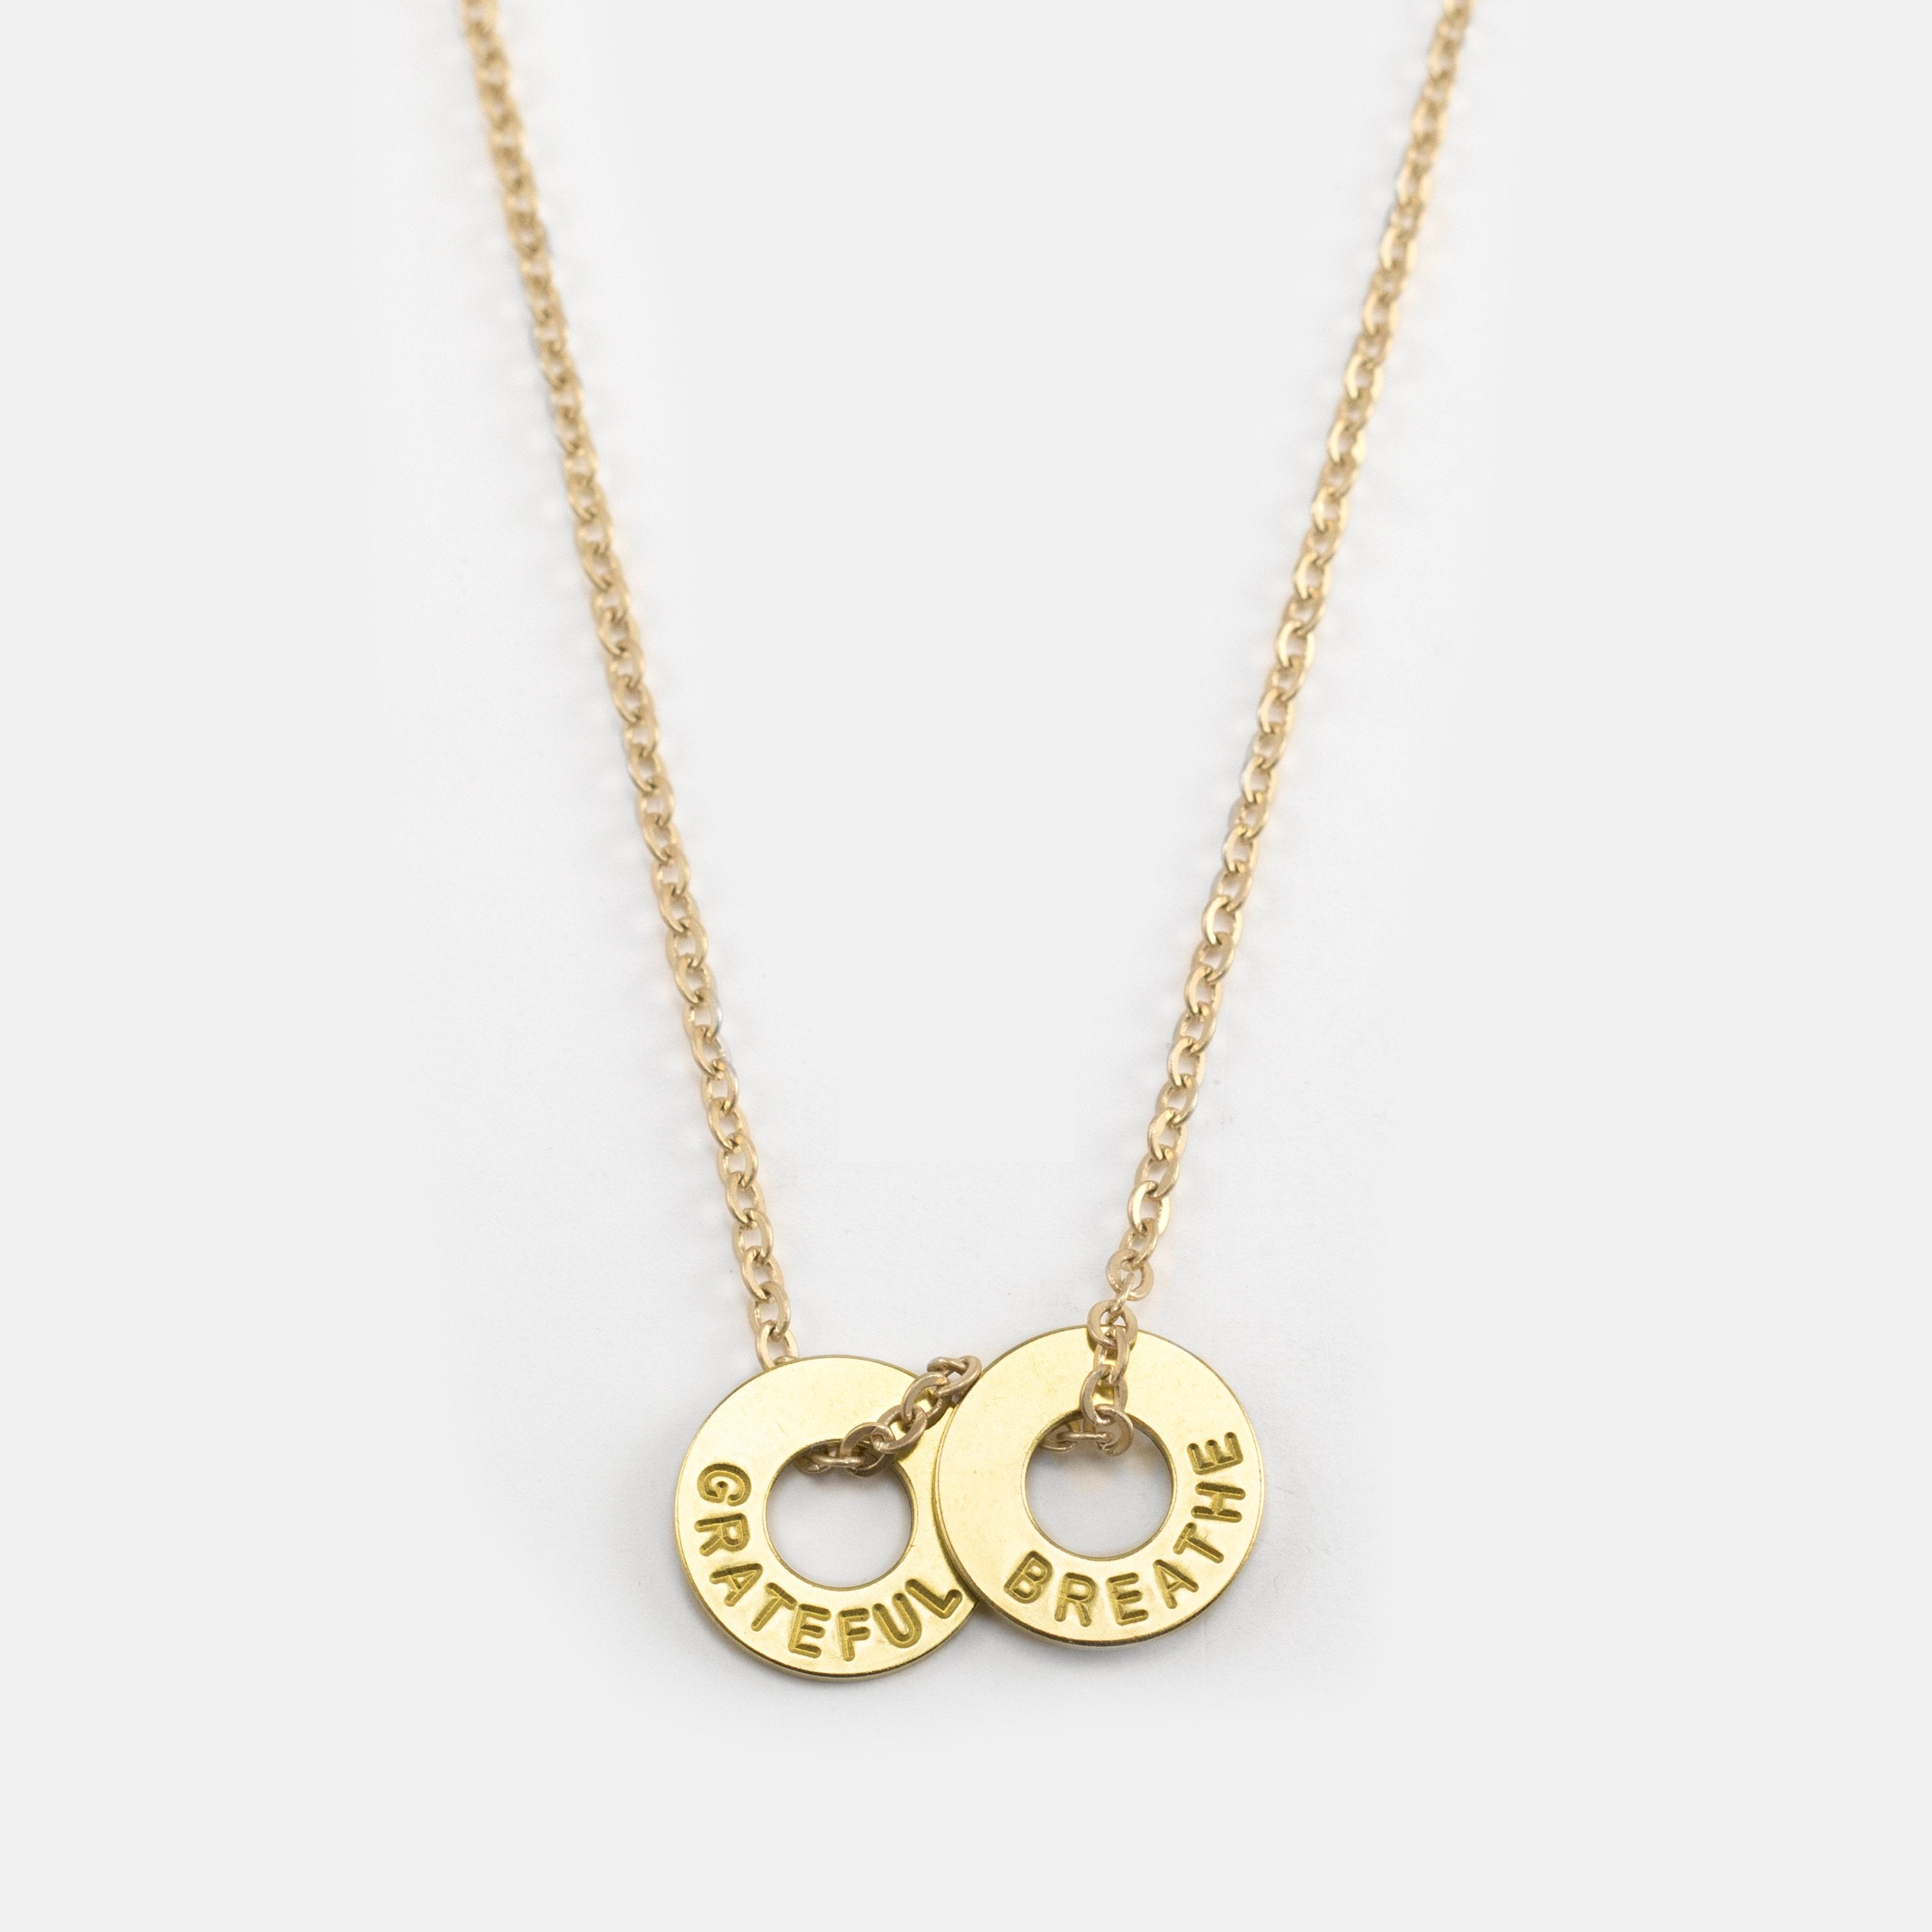 MyIntent Gratitude Pack necklaces has 2 chain brass necklaces with the words GRATEFUL & BREATHE